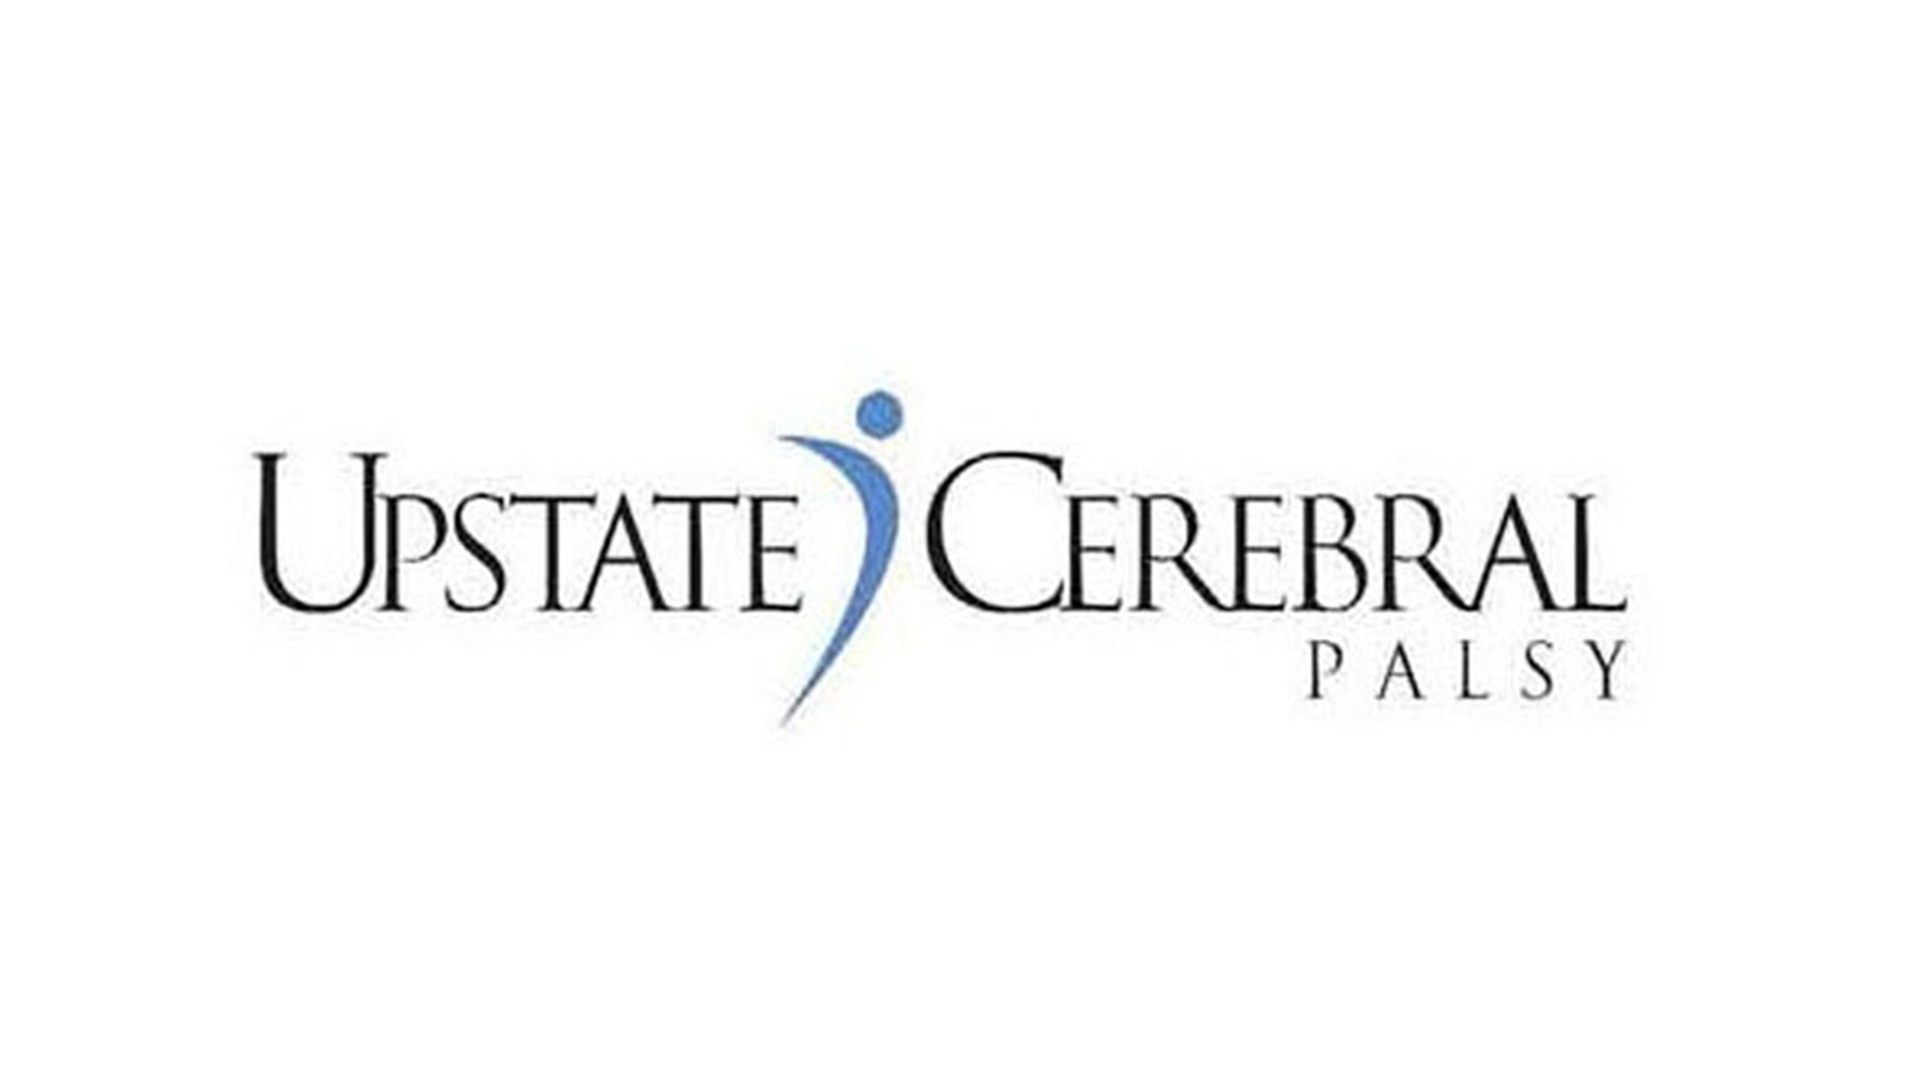 Upstate Cerebral Palsy